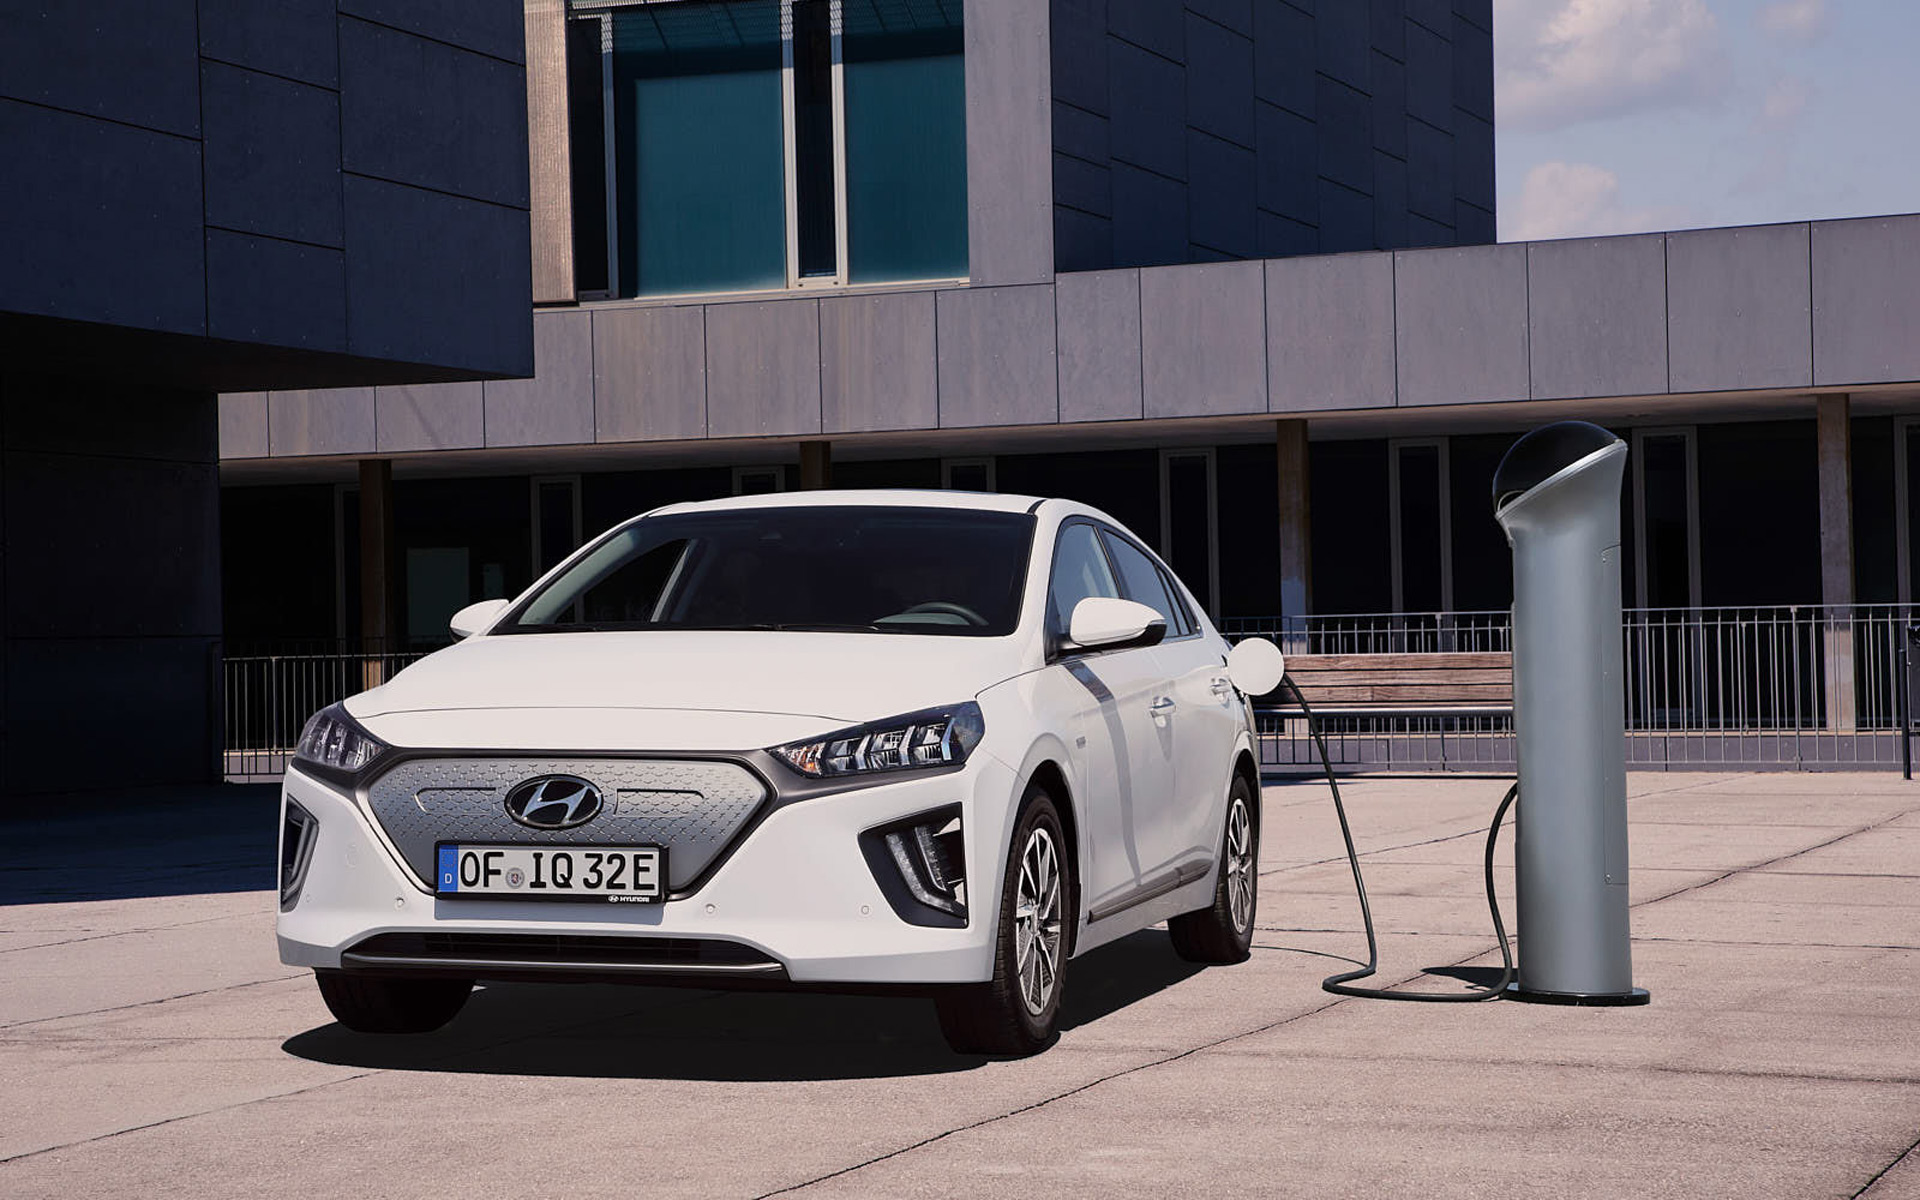 2020 Hyundai Ioniq arrives with more power, range for electric model